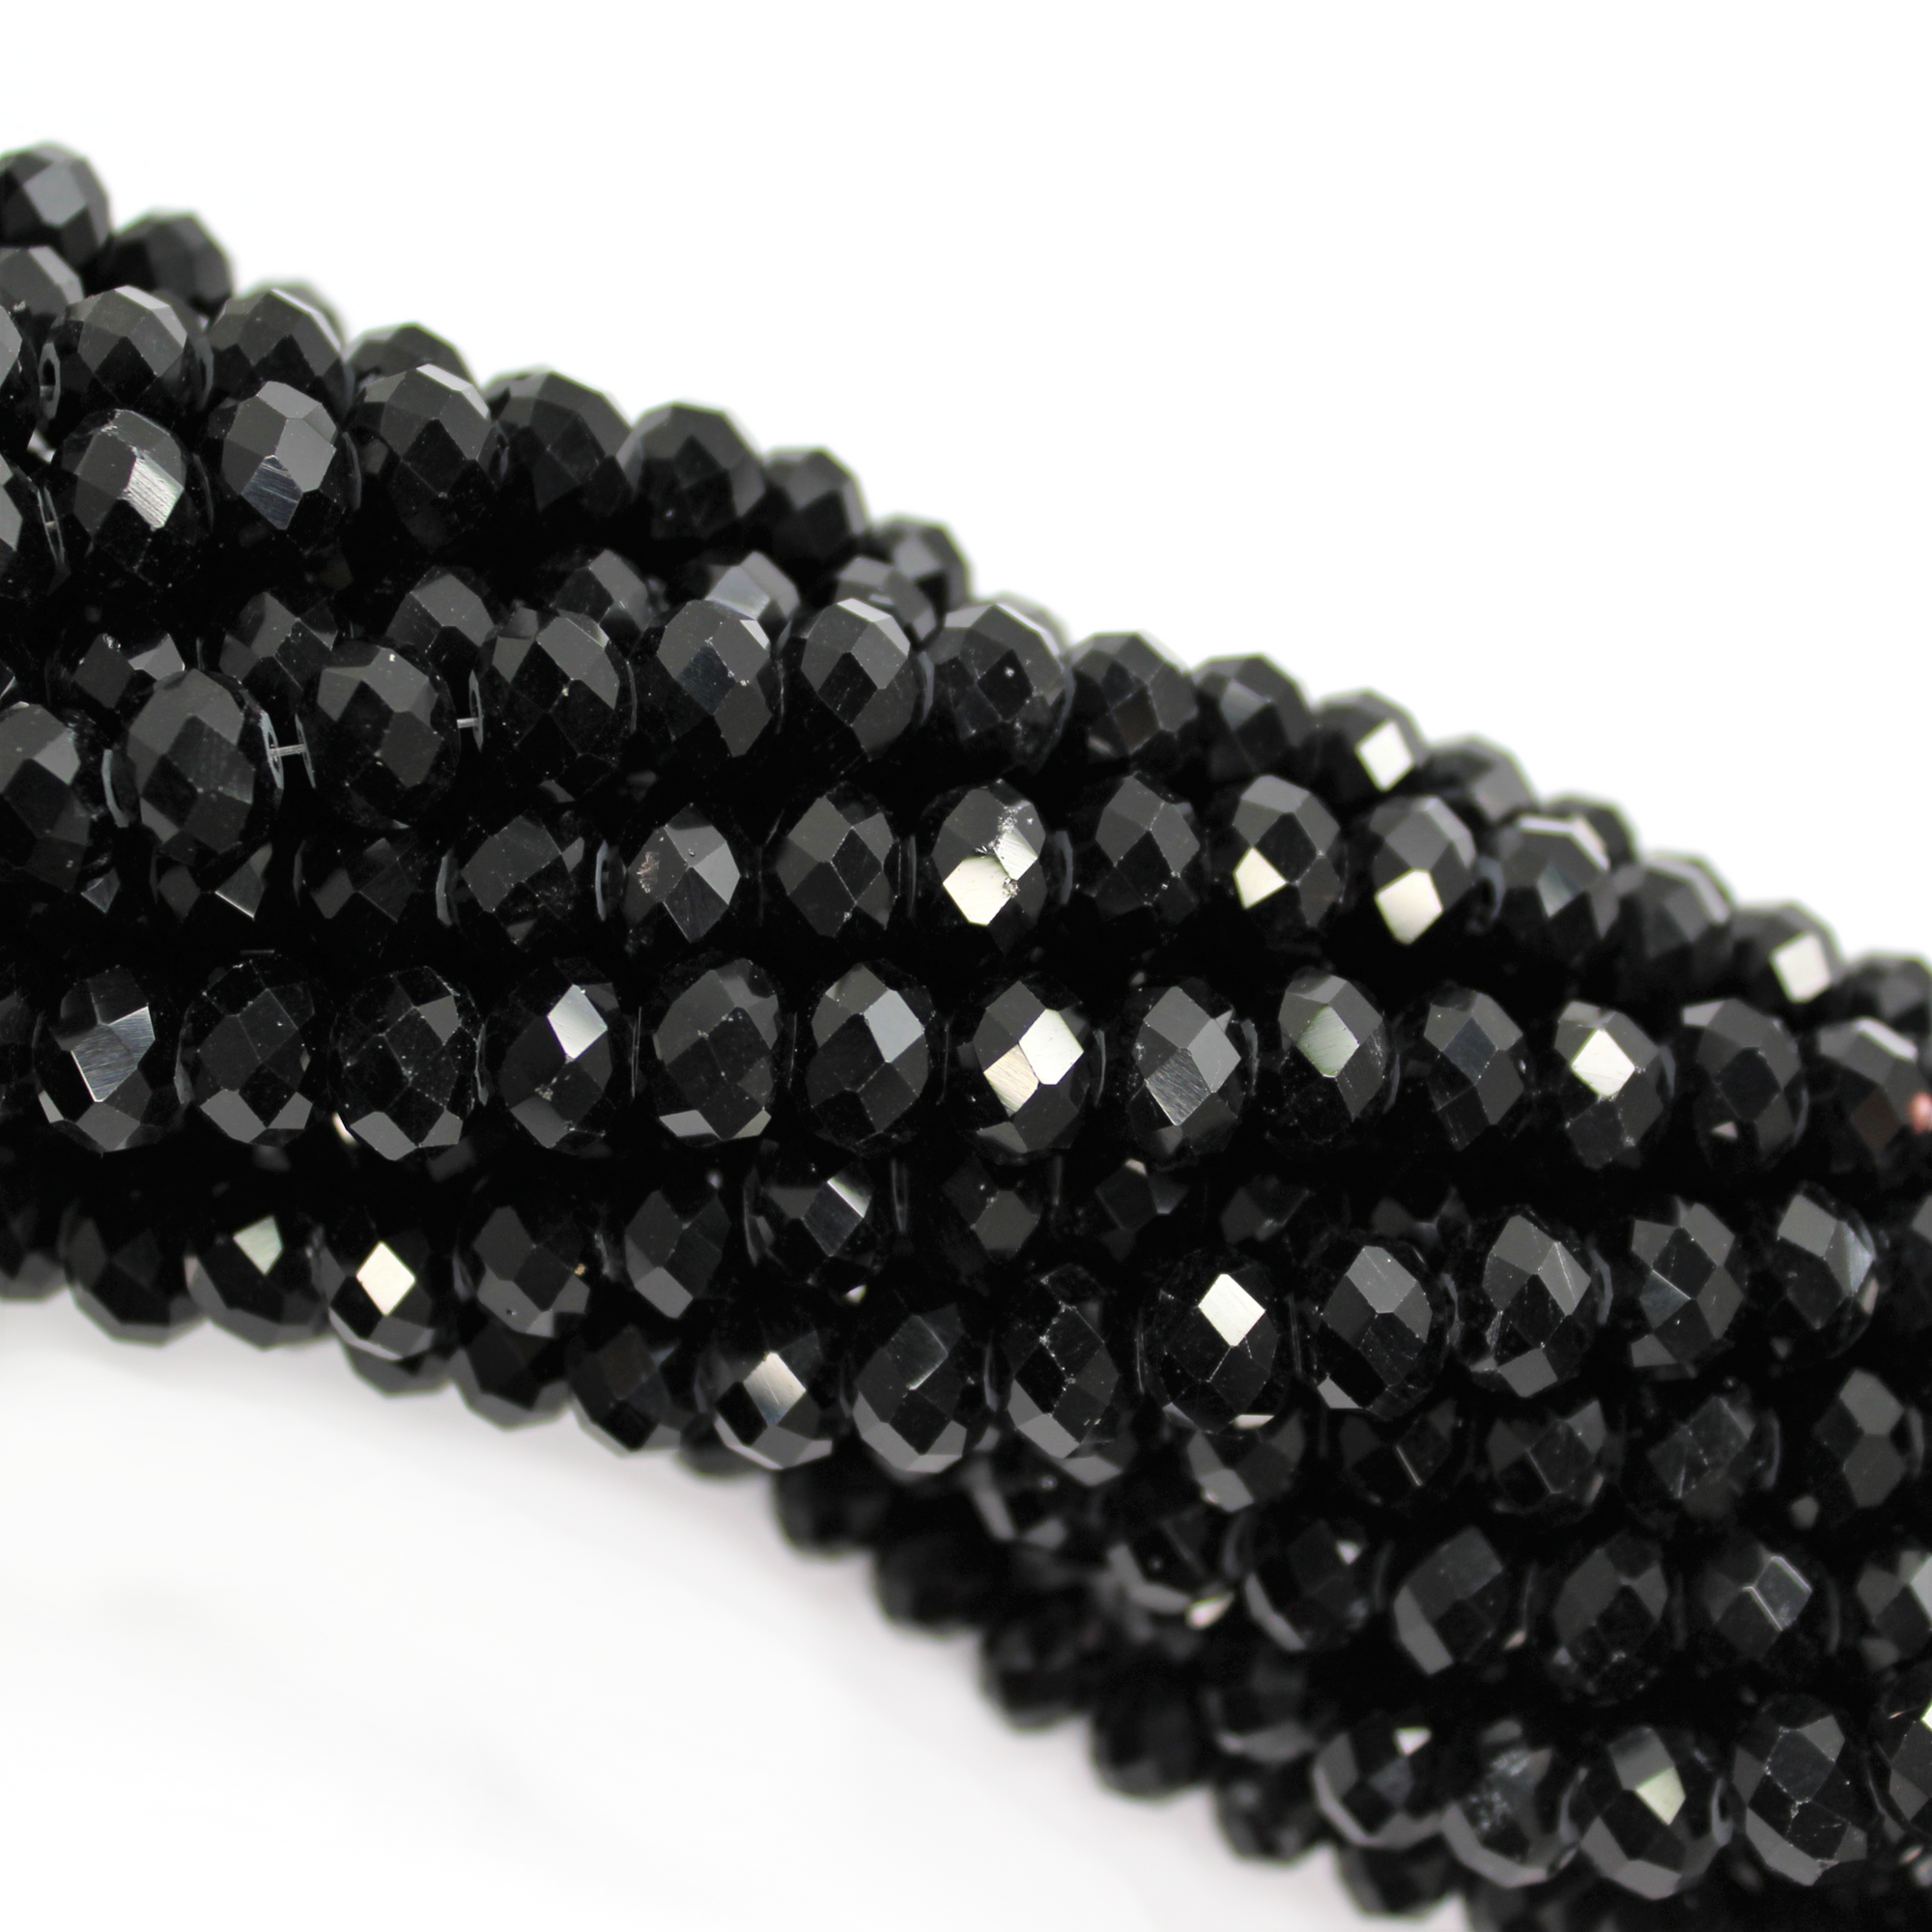 Chinese Glass Crystal, Rondelle, Black, 8mm X 6mm, 65 pcs per strand